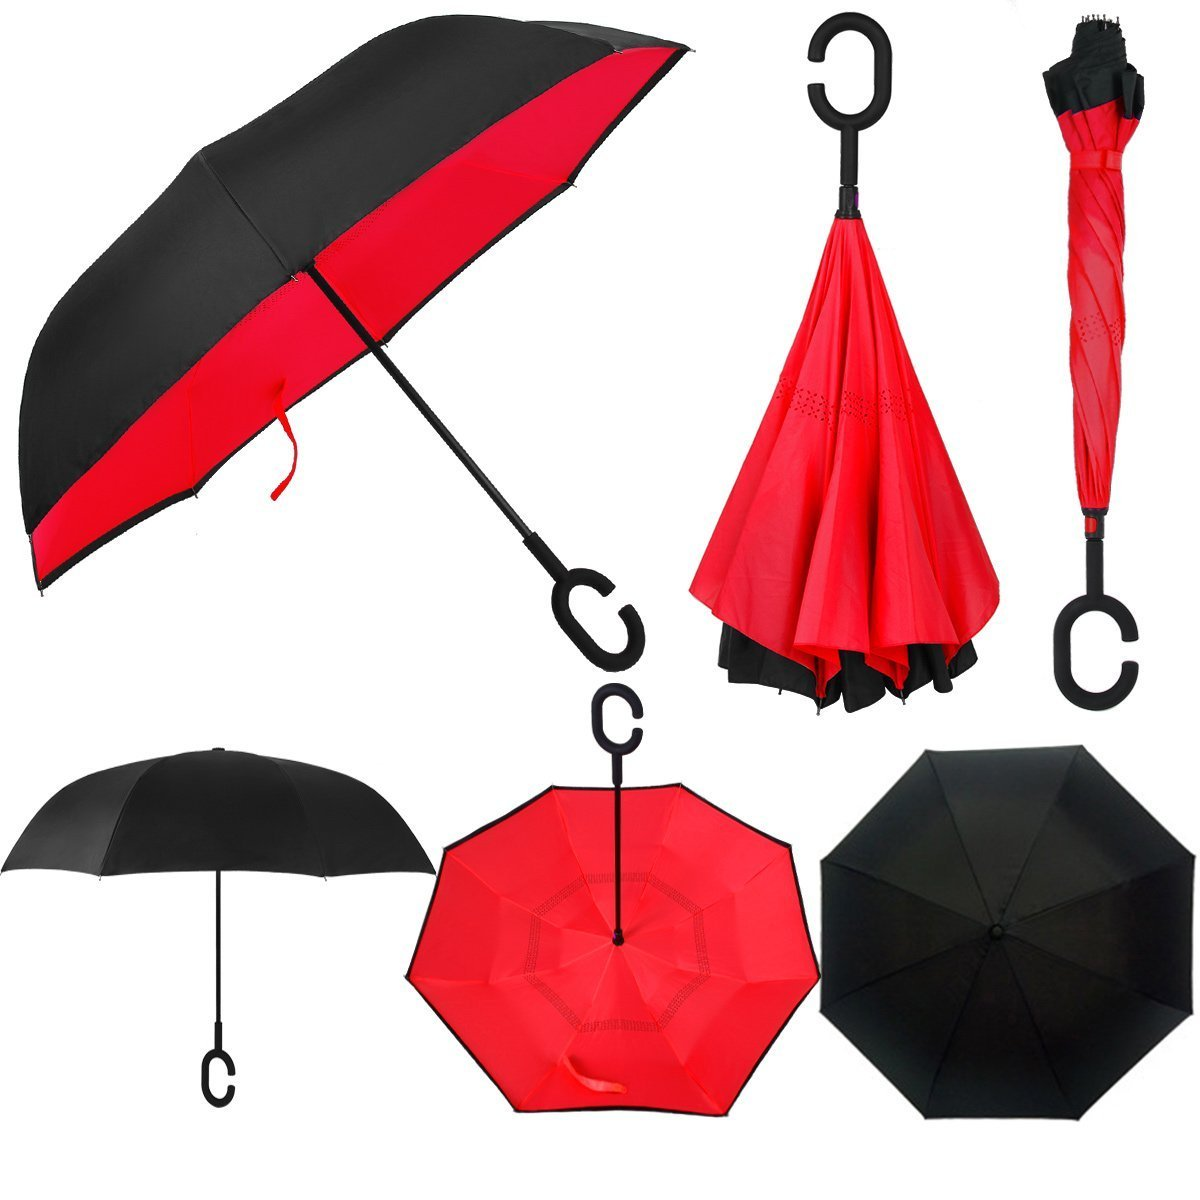 Swisstek Double Layer Reversible Smart Umbrella - Quick Dry Technology - Dual Layer Design - UV Protection Layer - Windproof & Waterproof - Stands On Its Own - Convenient C Grip (Red)